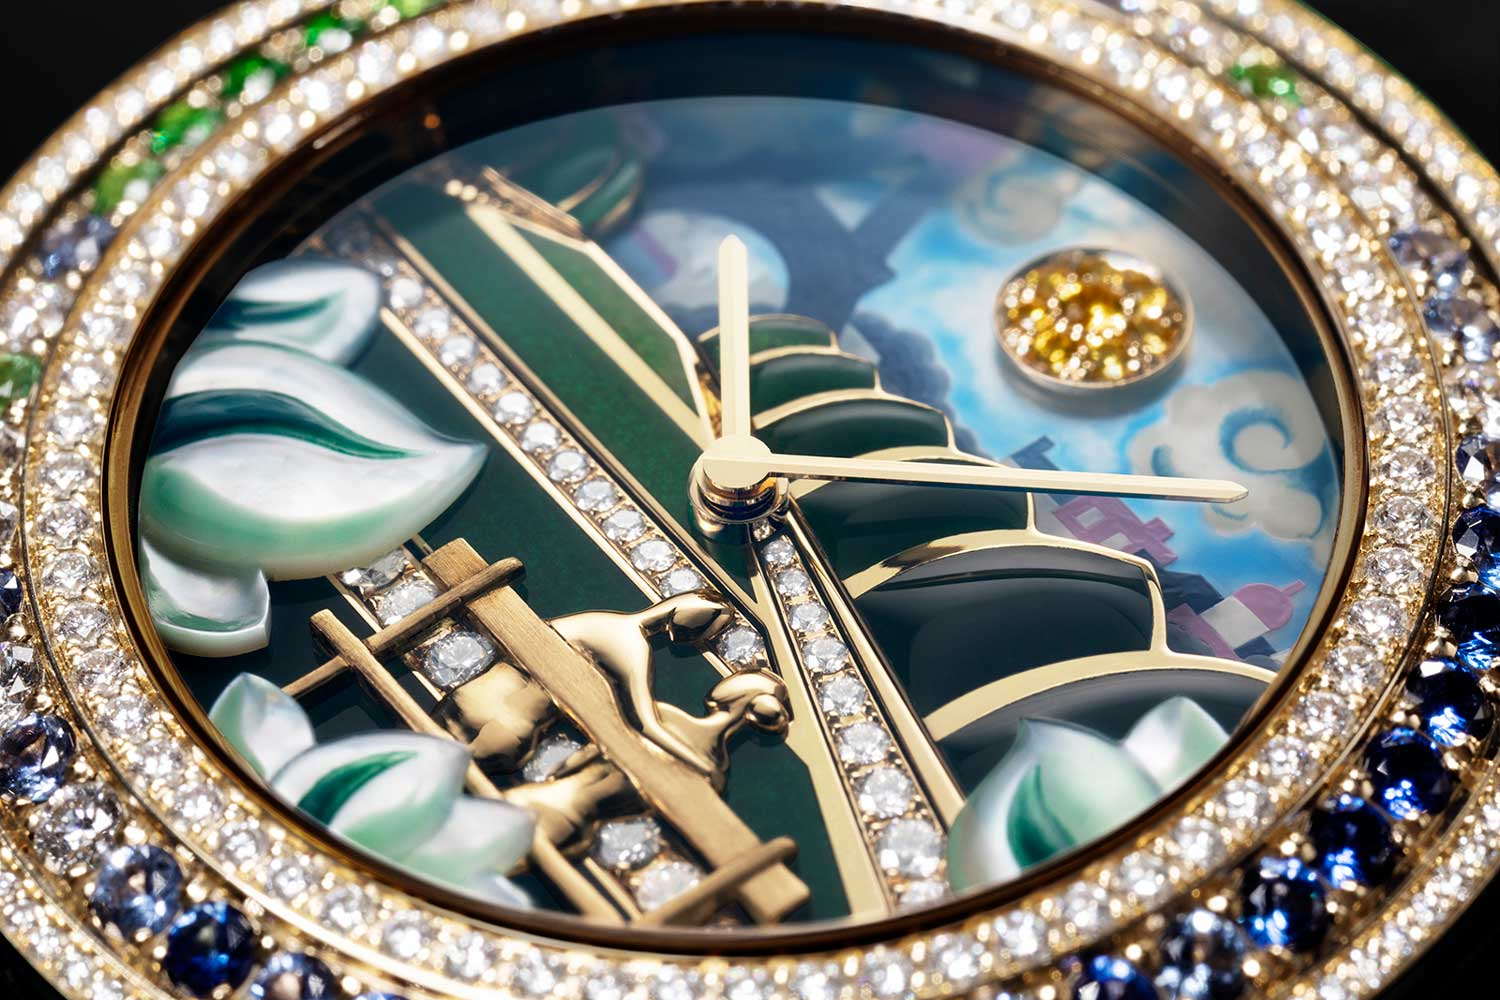 One of the pieces in the Extraordinary Dials collection presented sees the lovers unite on the dial with a combination of different artistic techniques. (Image shoy by Toh Si Jia for Revolution)